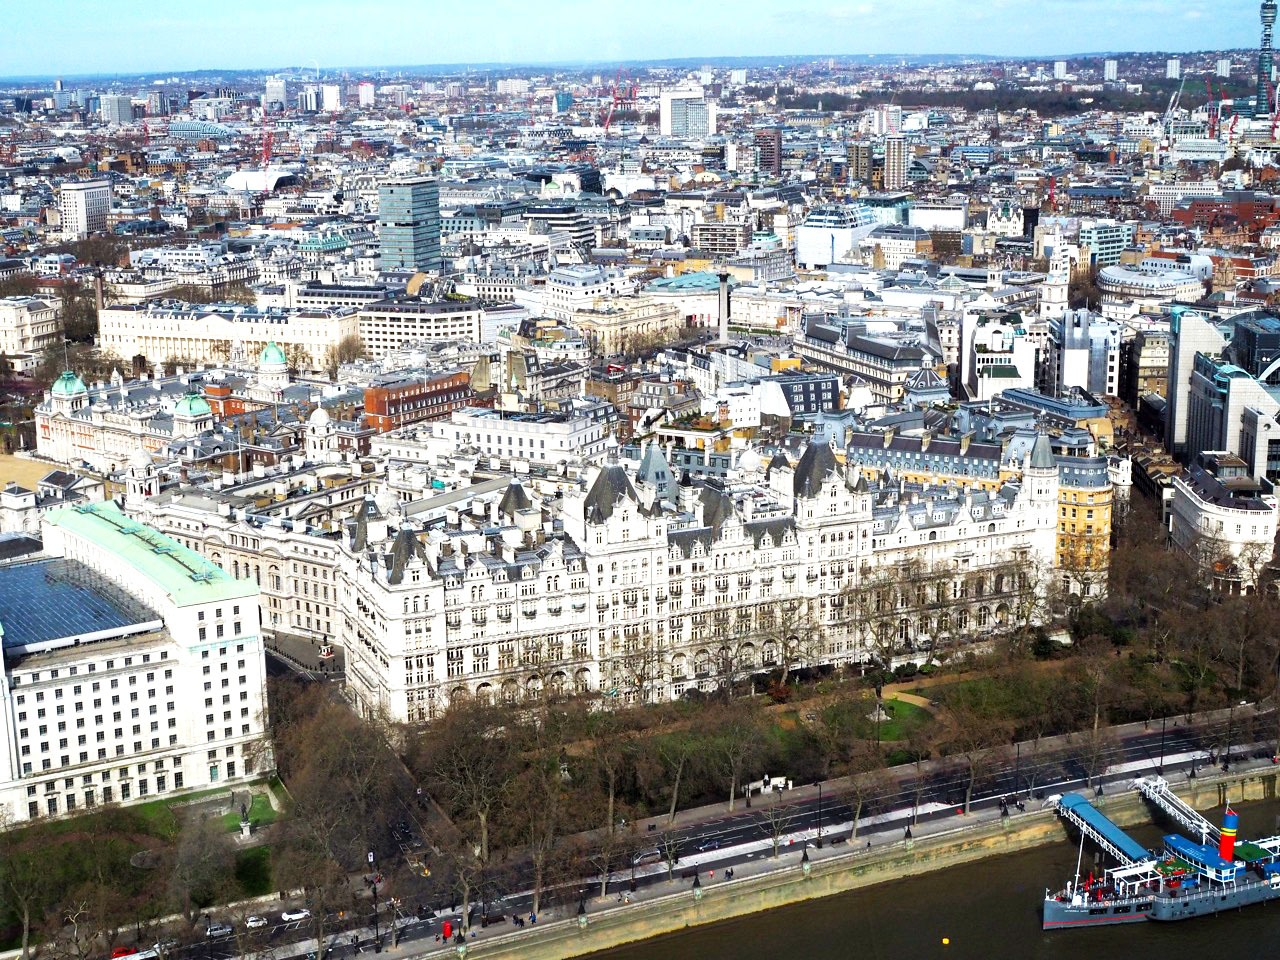 The View from the London Eye